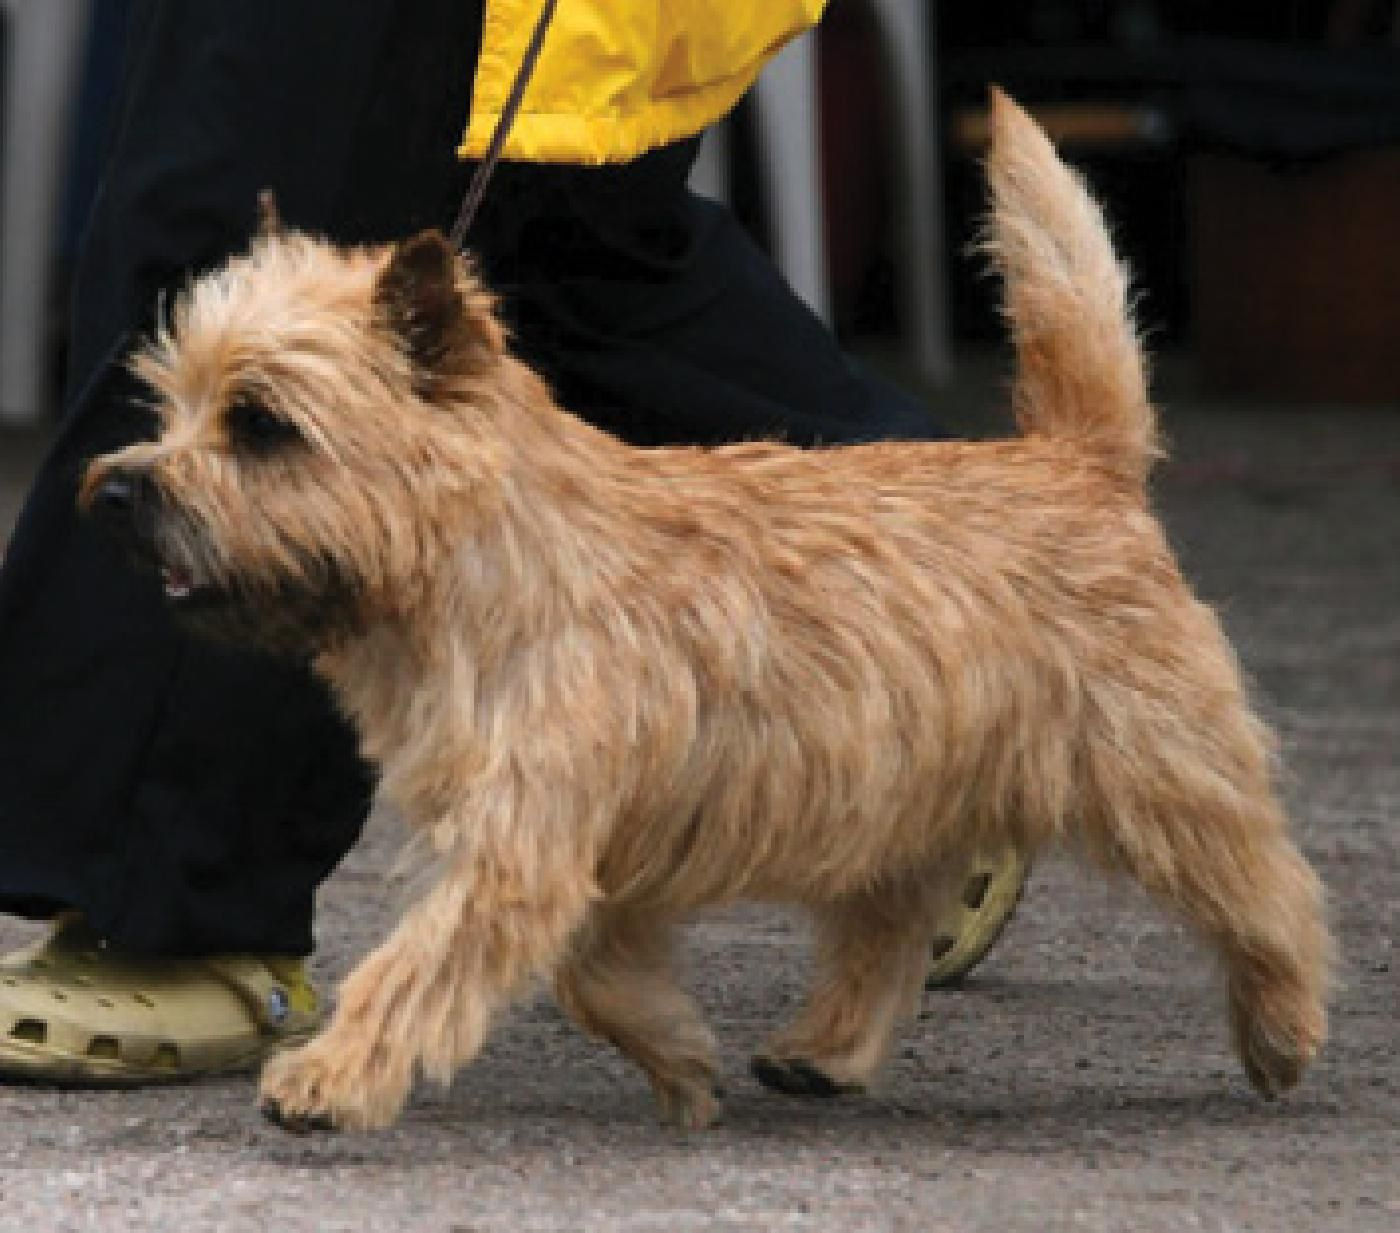 The Cairn Terrier A Synopsis Of The Illustrated Guide Of The Cairn Terrier Showsight Magazine Home Of Pureb Cairn Terrier Purebred Dogs Terrier Dog Breeds